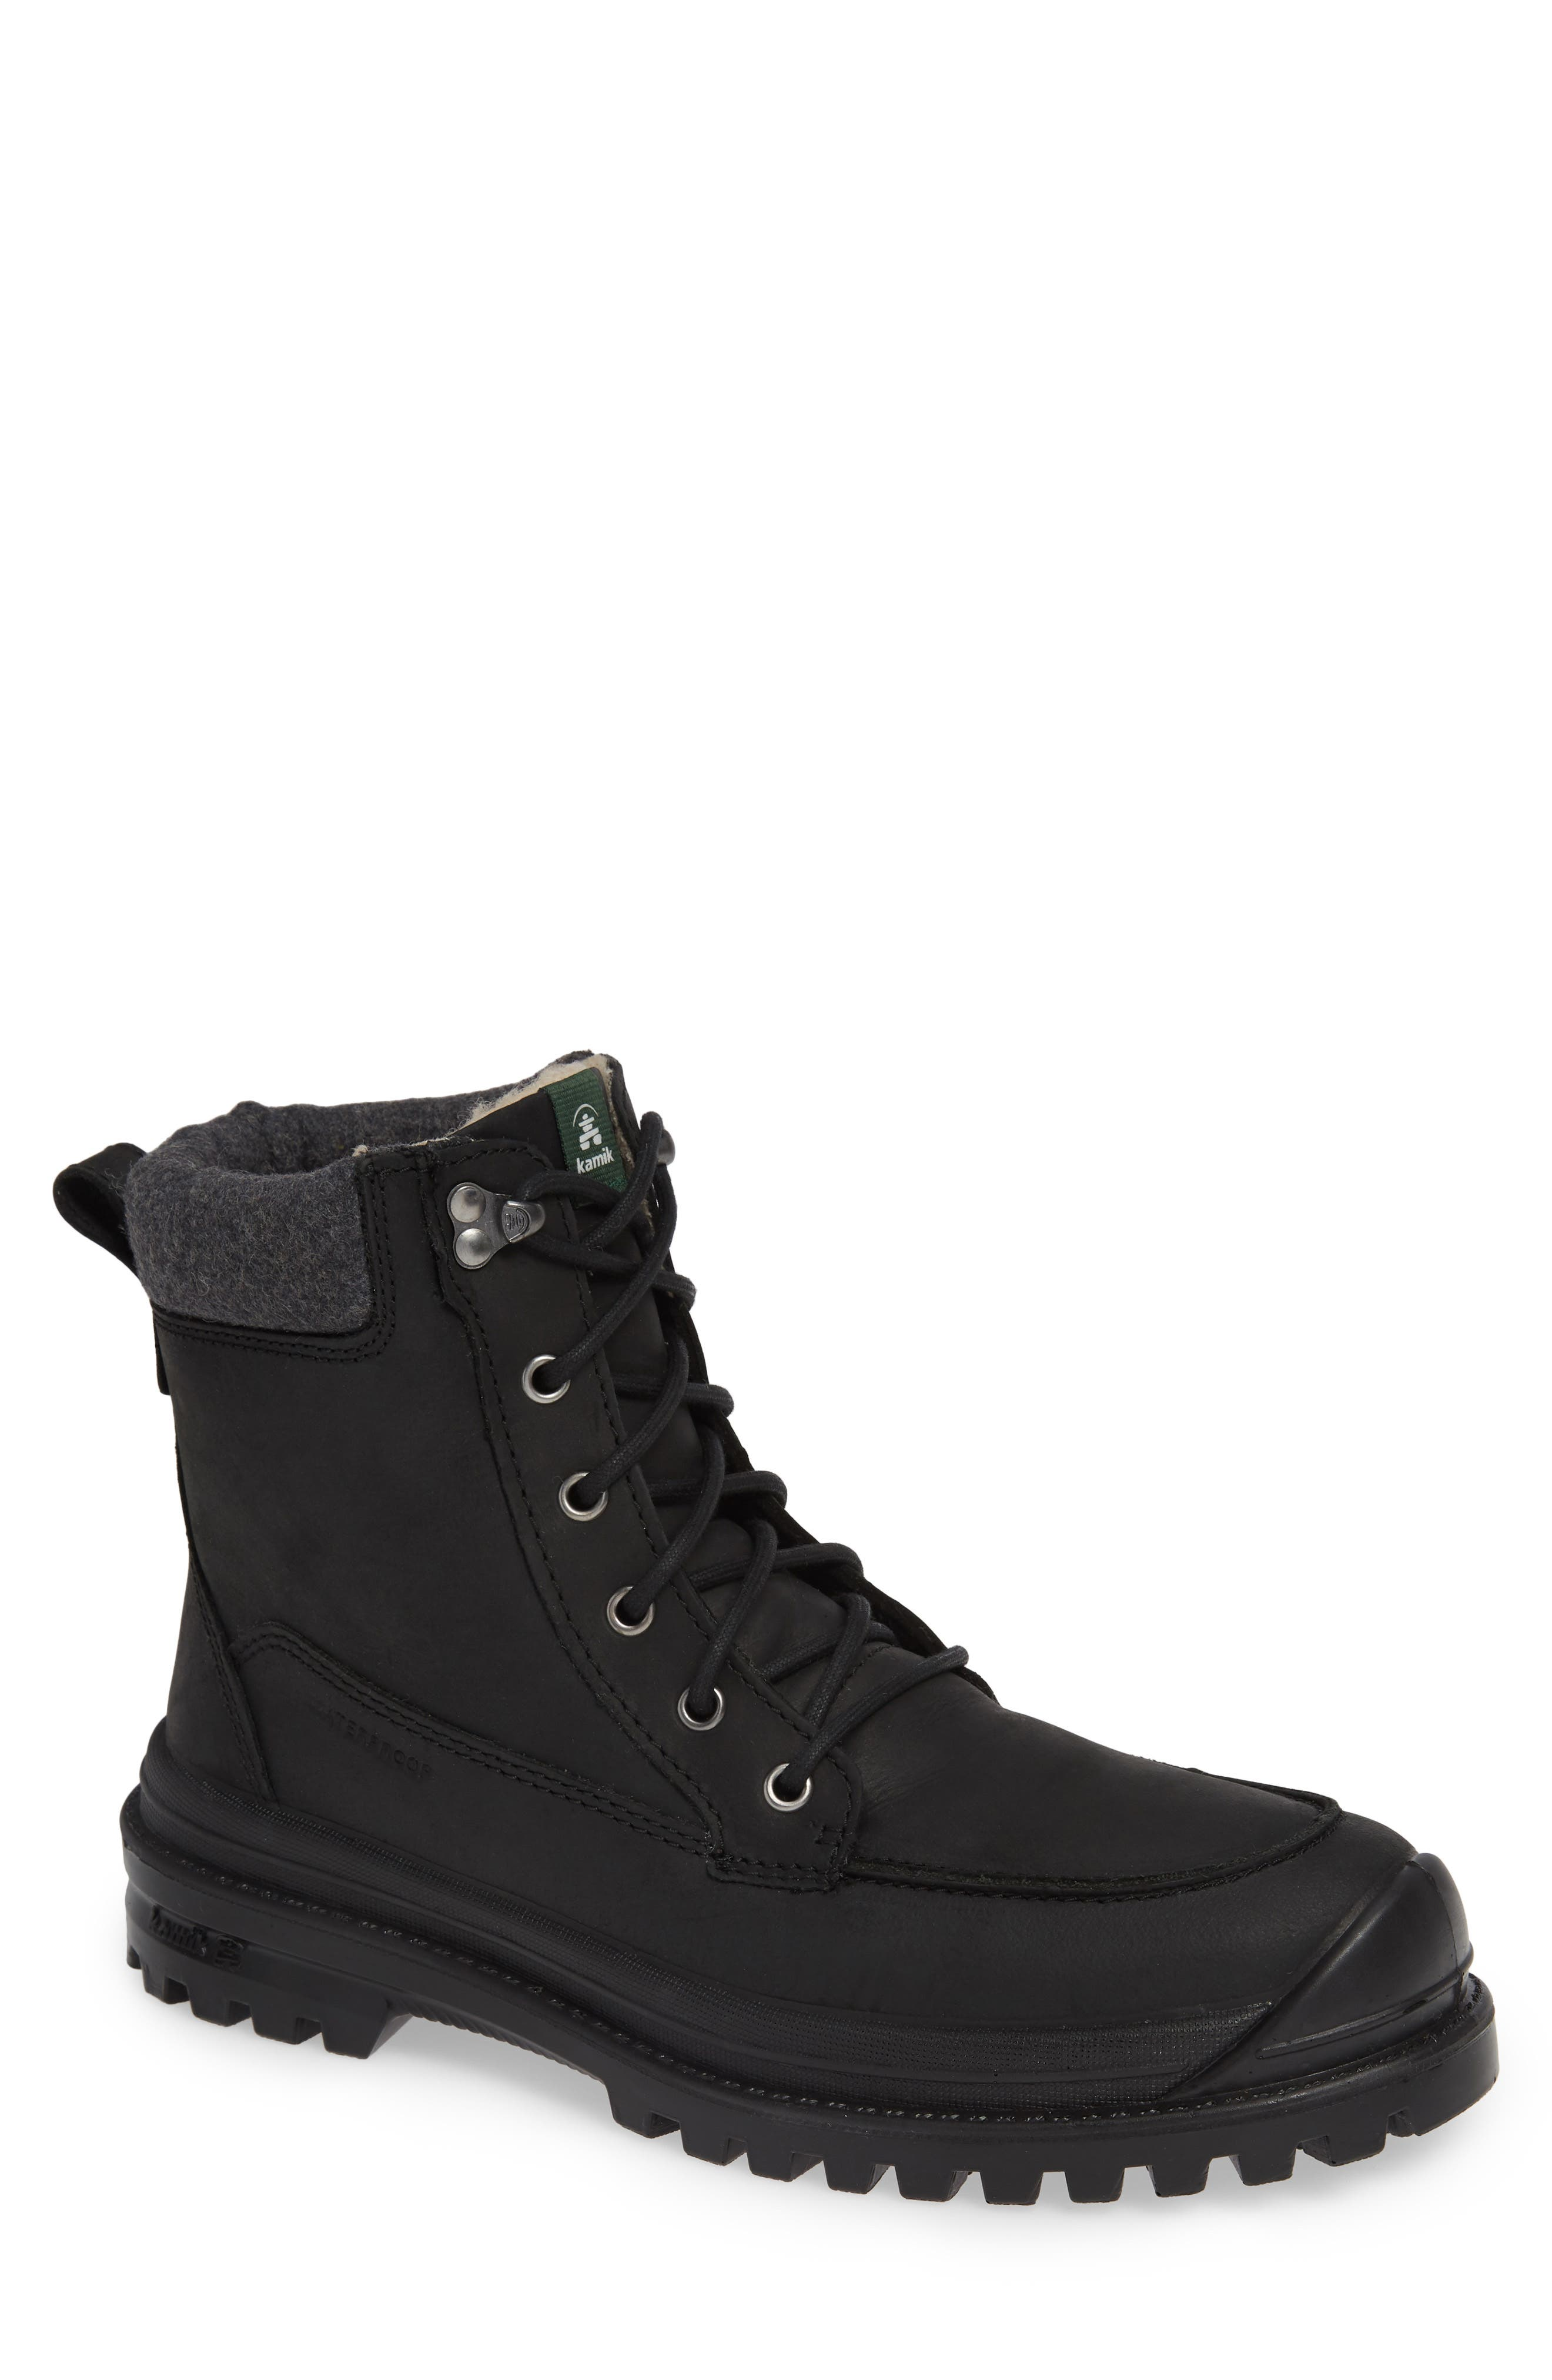 Griffon2 Snow Waterproof Boot with Faux Shearling,                         Main,                         color, BLACK/ BLACK LEATHER